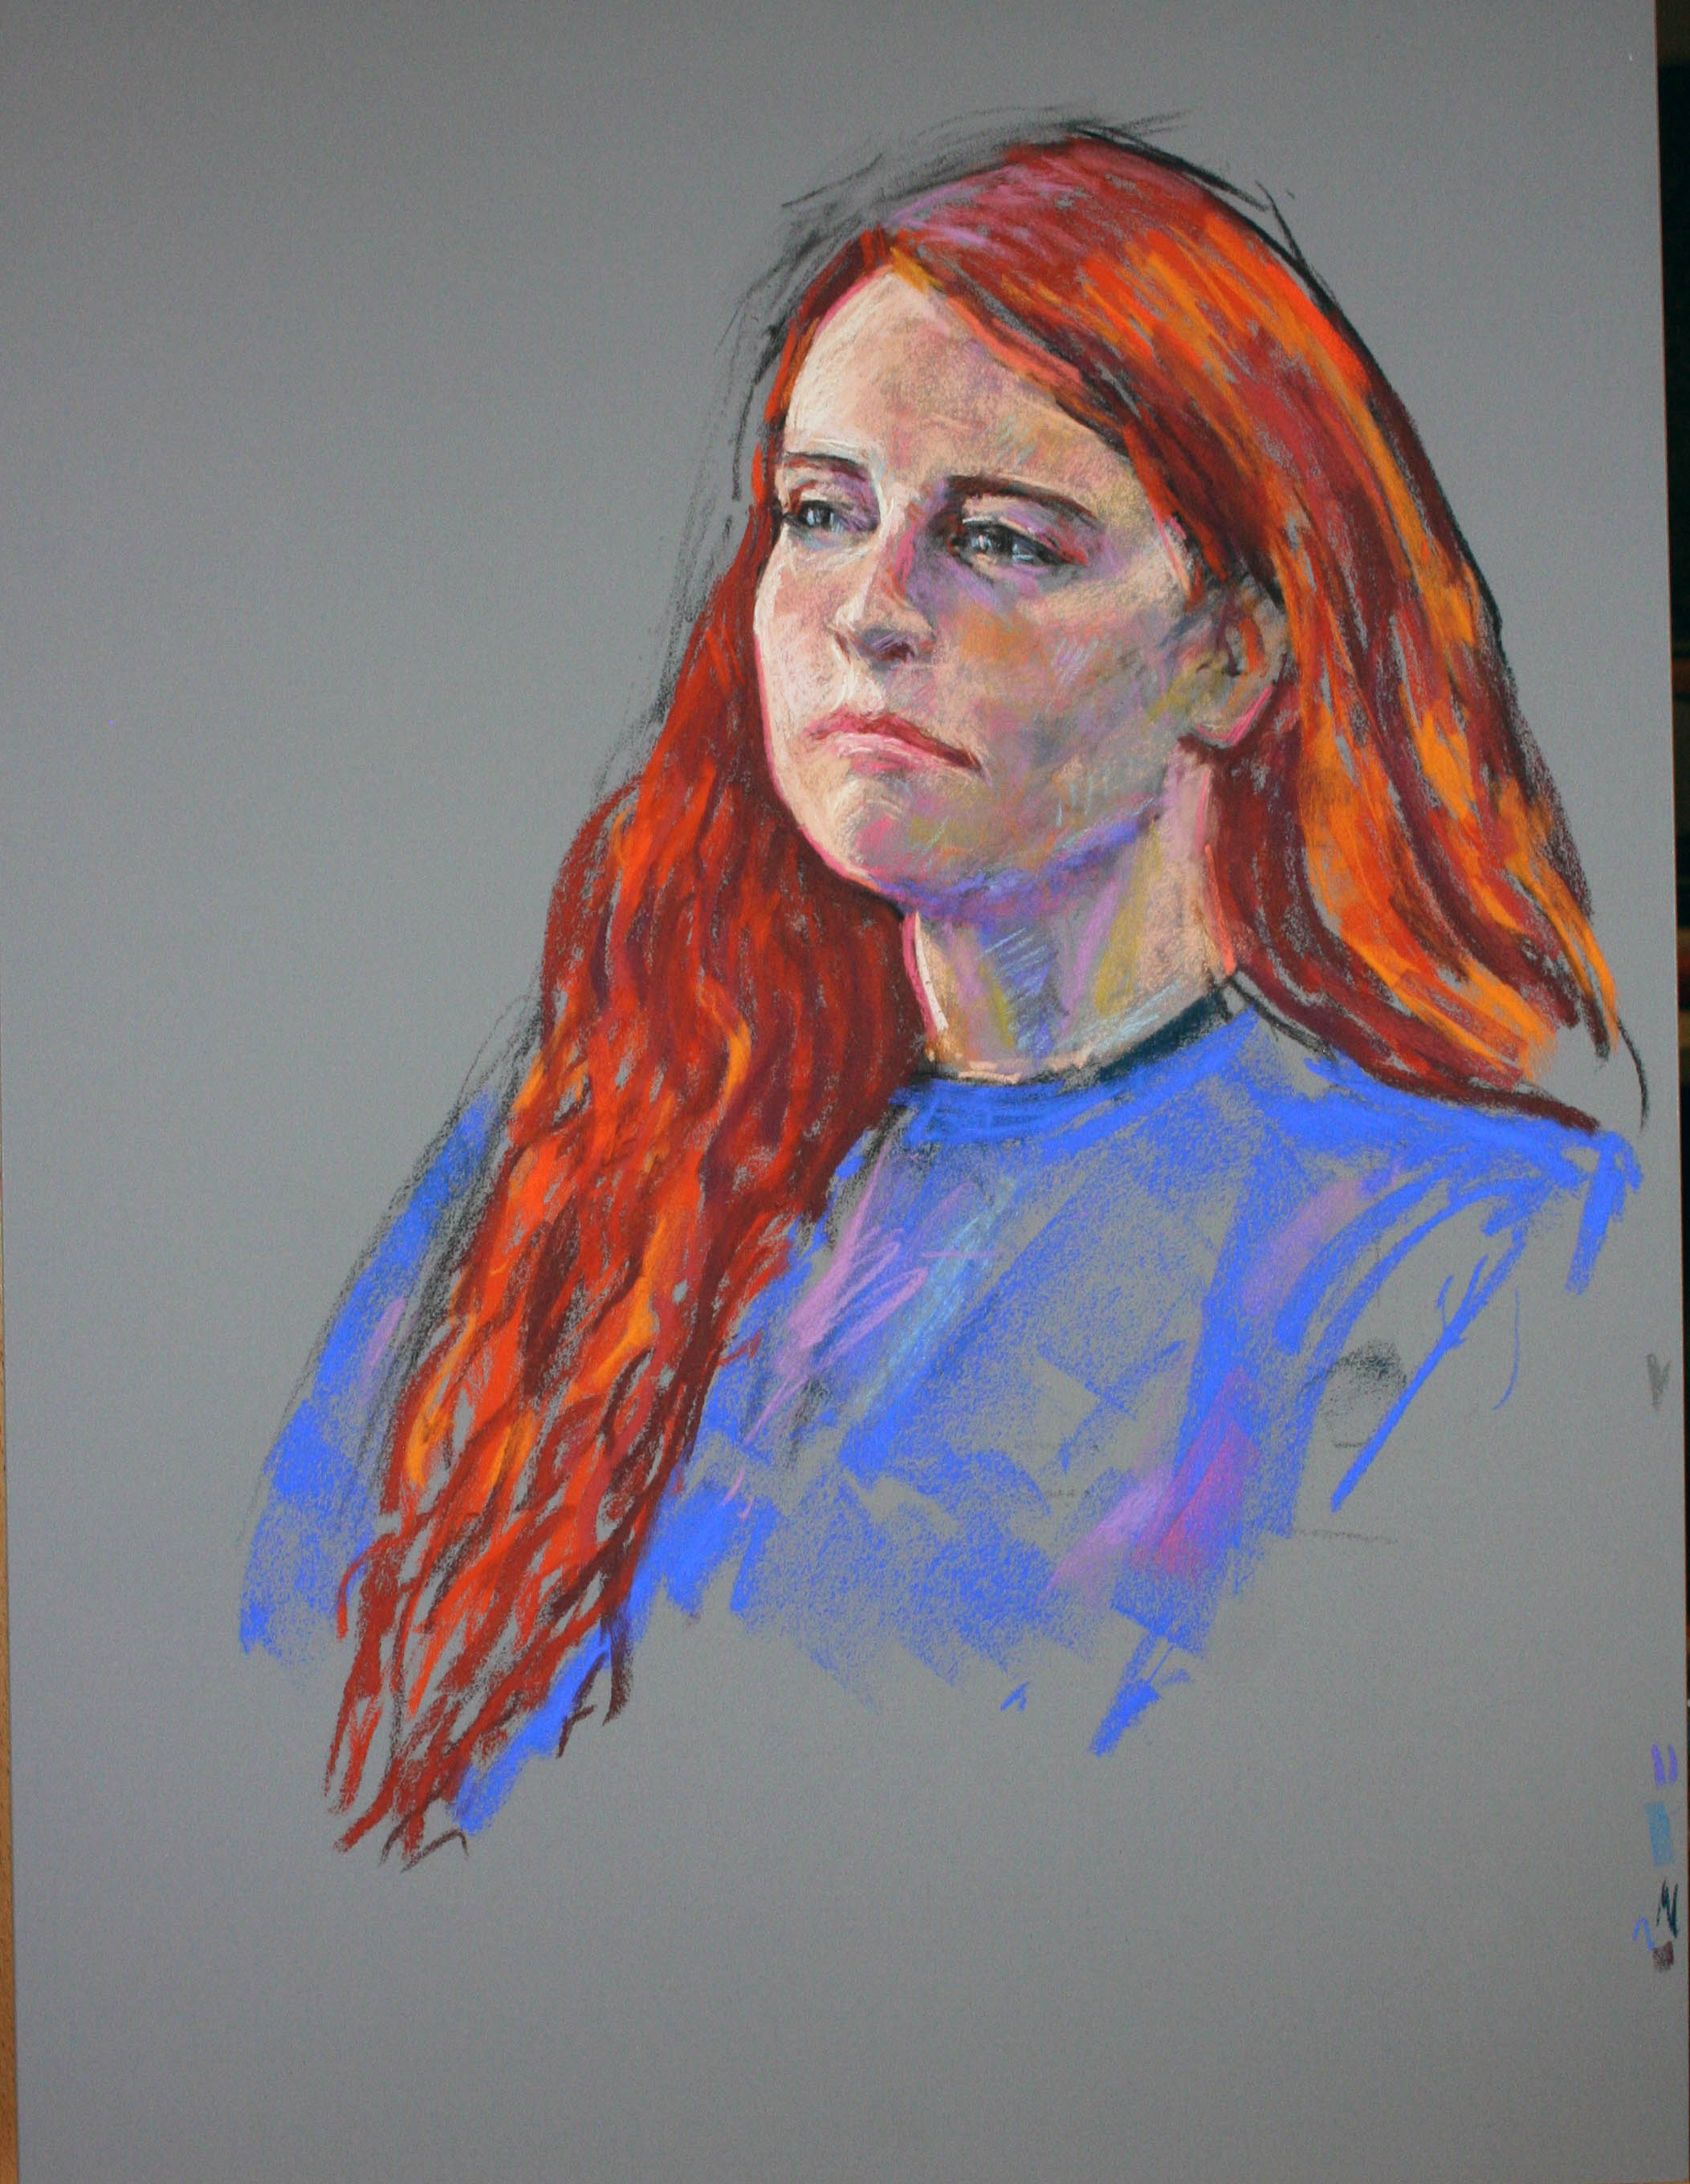 David King did this pastel drawing of his daughter.